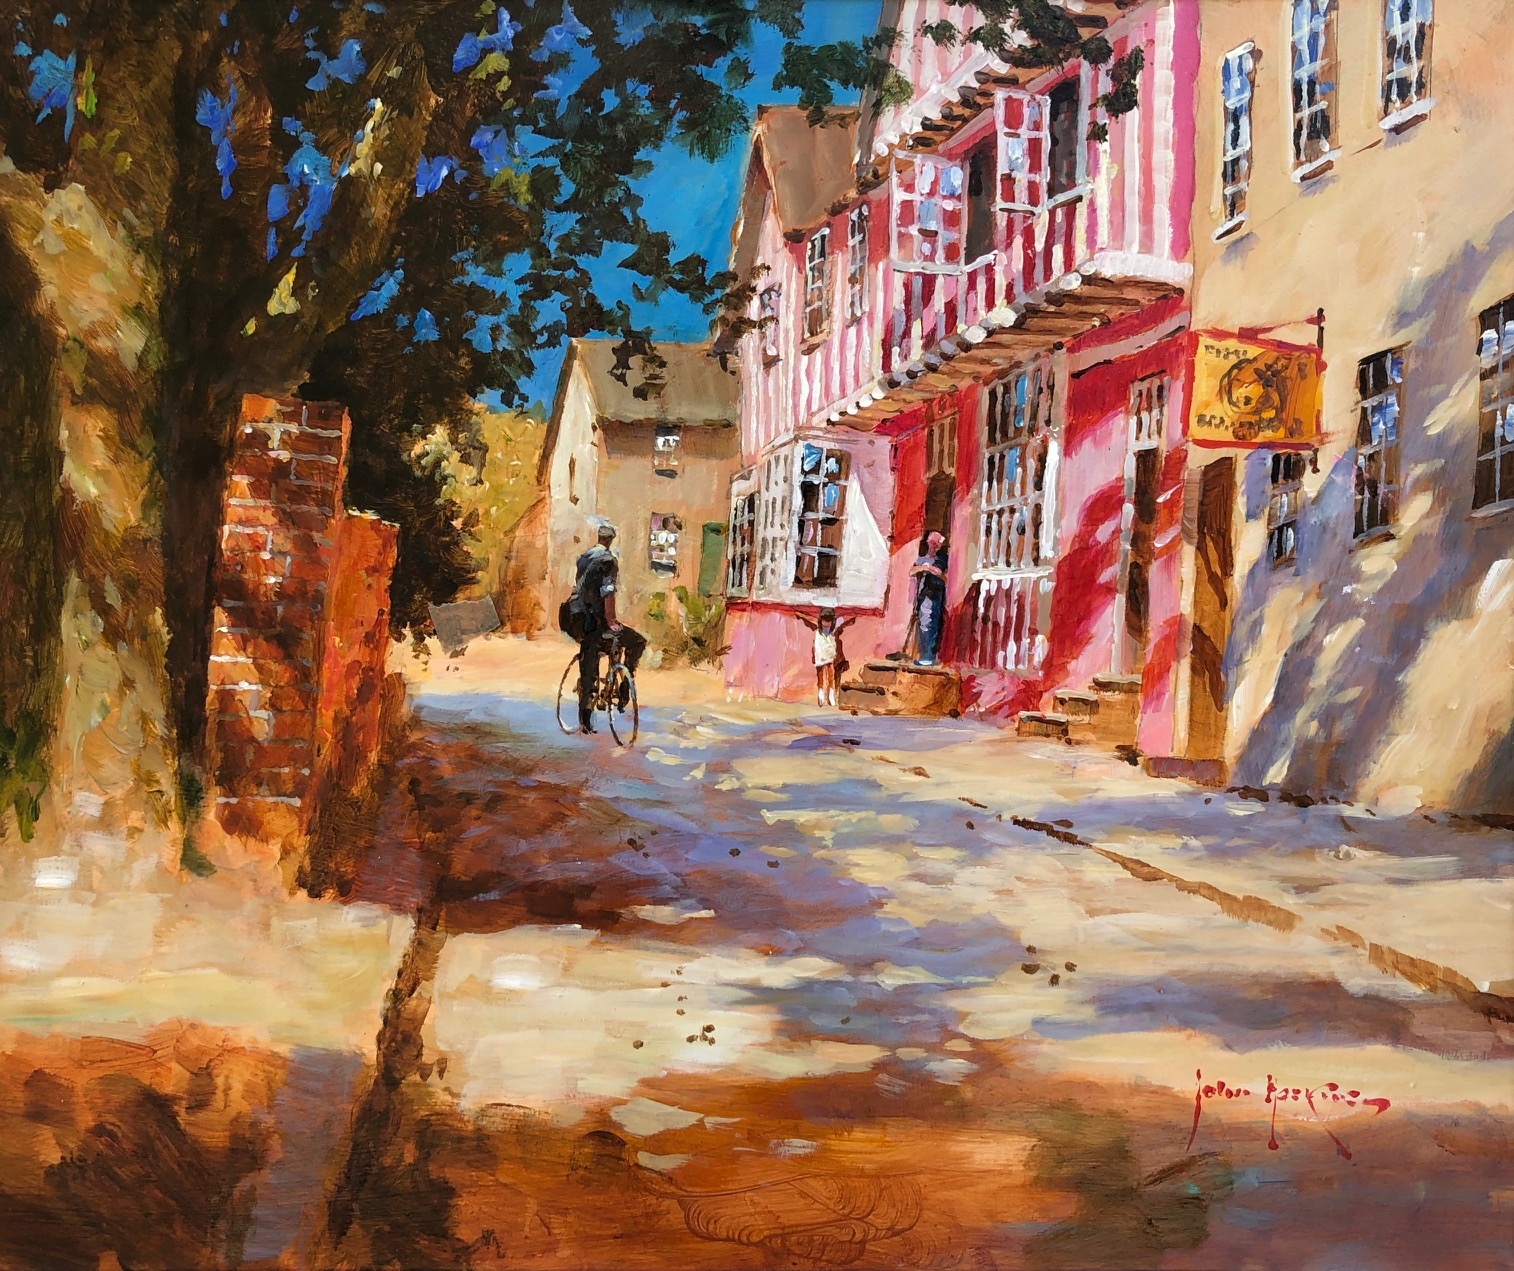 Summer at Cavendish by  John Haskins - Masterpiece Online